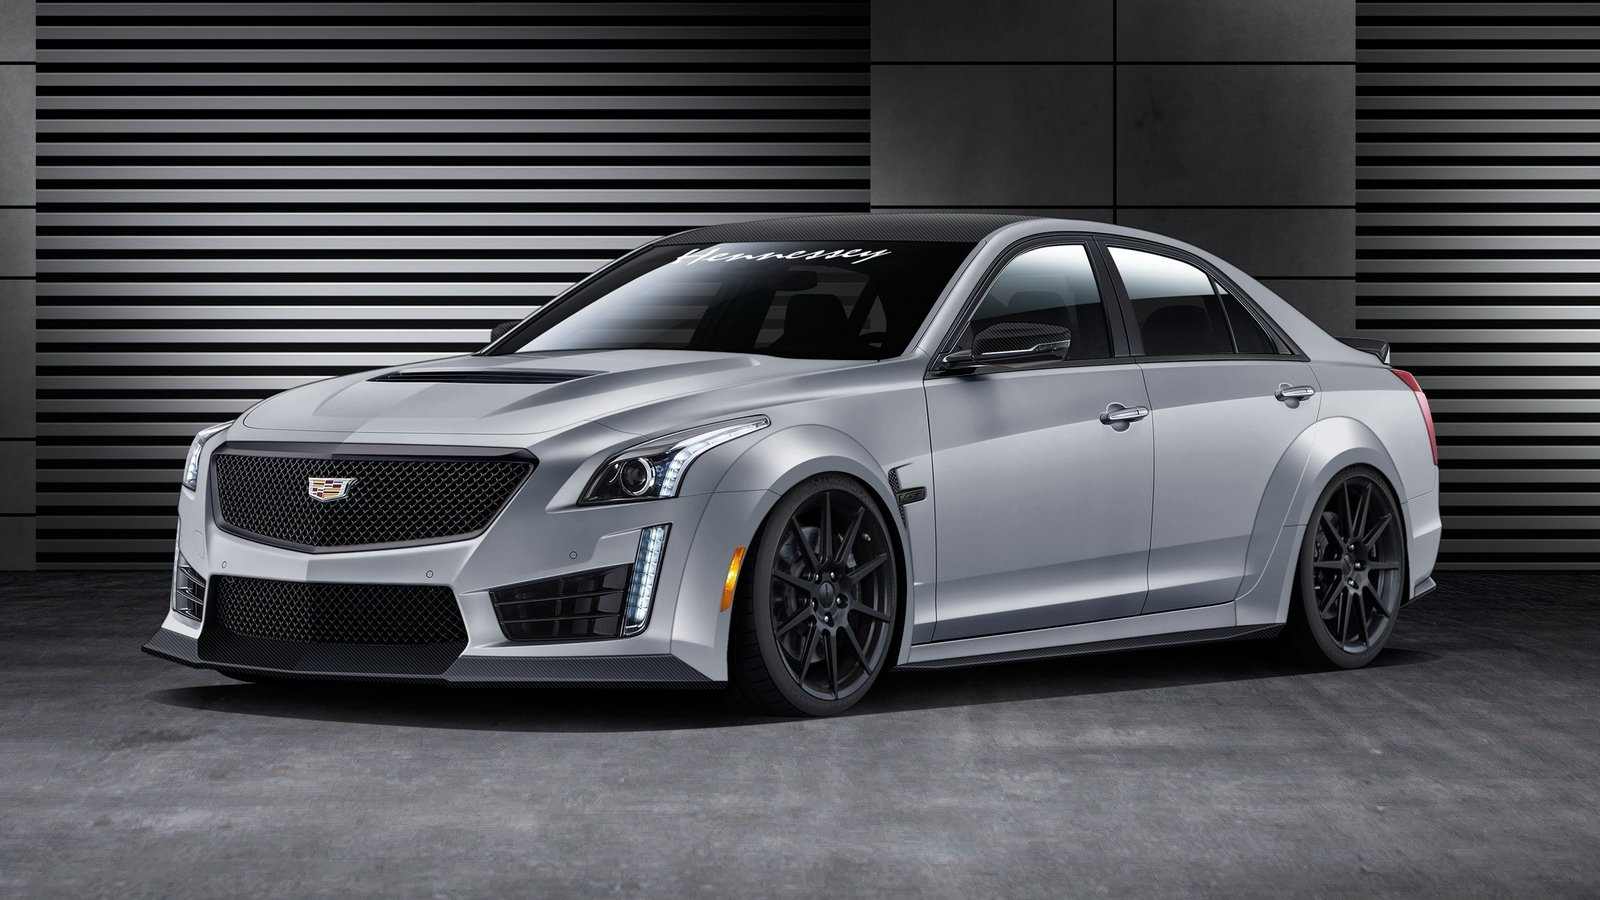 2016 cadillac cts v by hennessey picture 655899 car review top speed. Black Bedroom Furniture Sets. Home Design Ideas